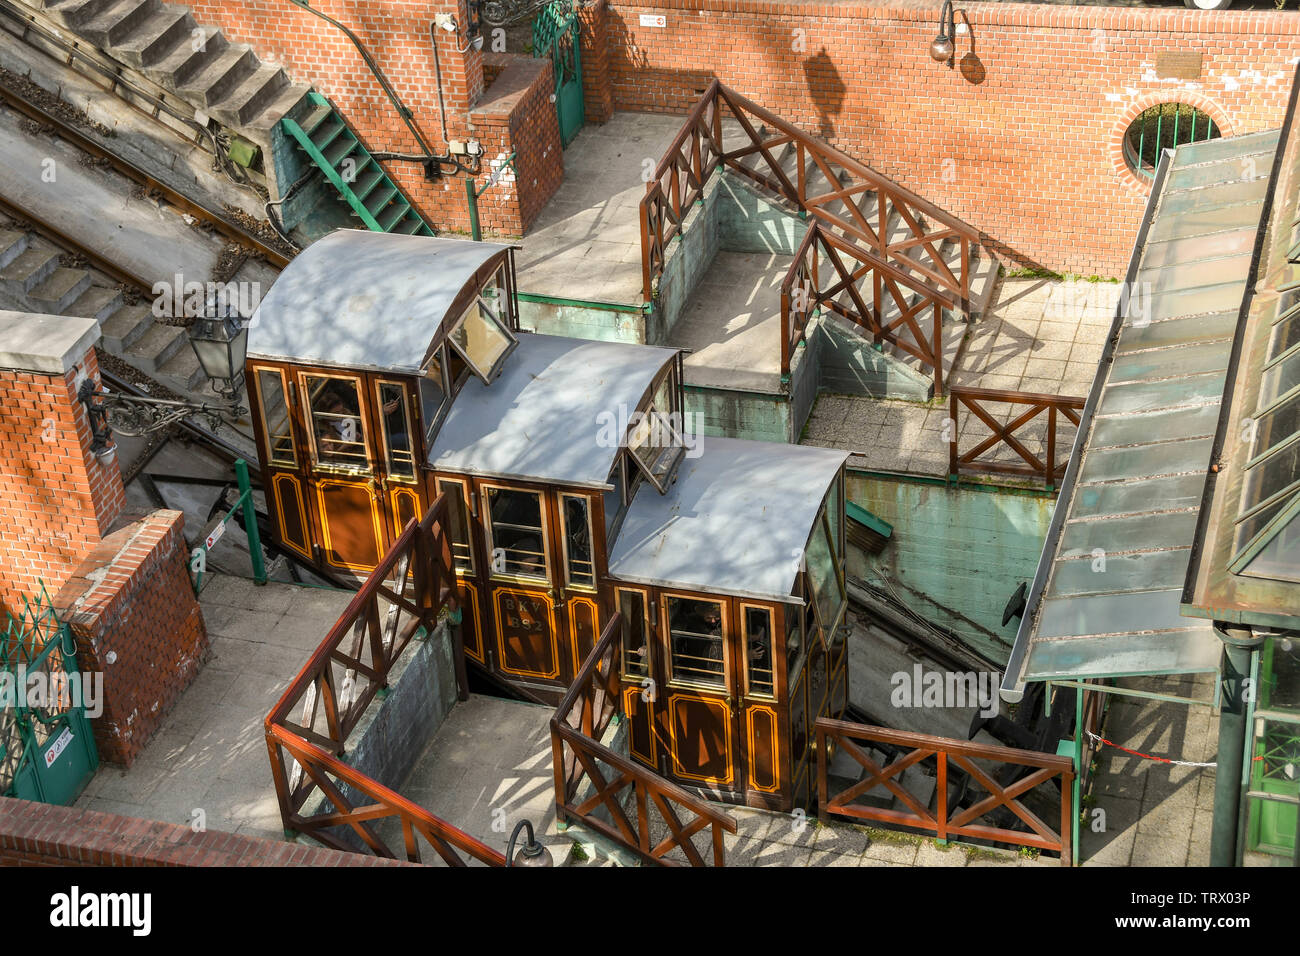 """BUDAPEST, HUNGARY - MARCH 2018: Aerial view of the base station of the Budapest Castle Hill Funicular railway or """"Budavári Sikló"""". Stock Photo"""